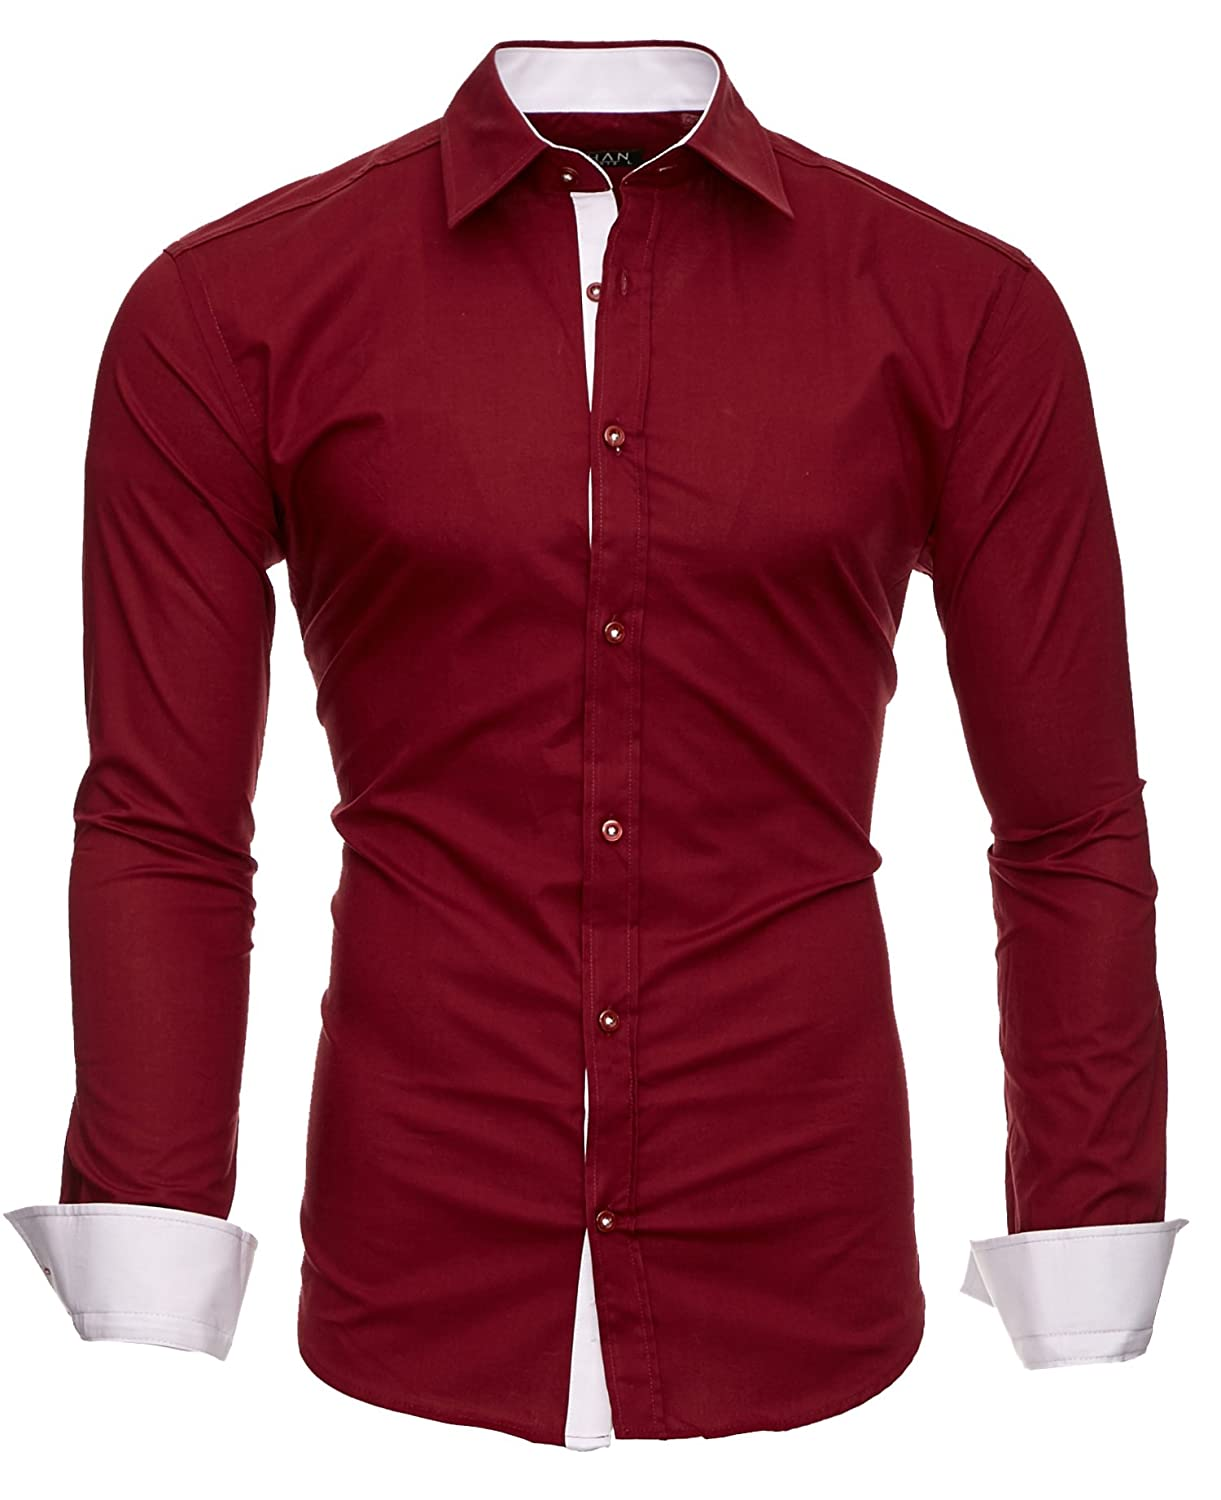 Kayhan Men´s Long Sleeve Casual Shirt Slim fit Easy Iron Modell - Twoface + London: Amazon.co.uk: Clothing